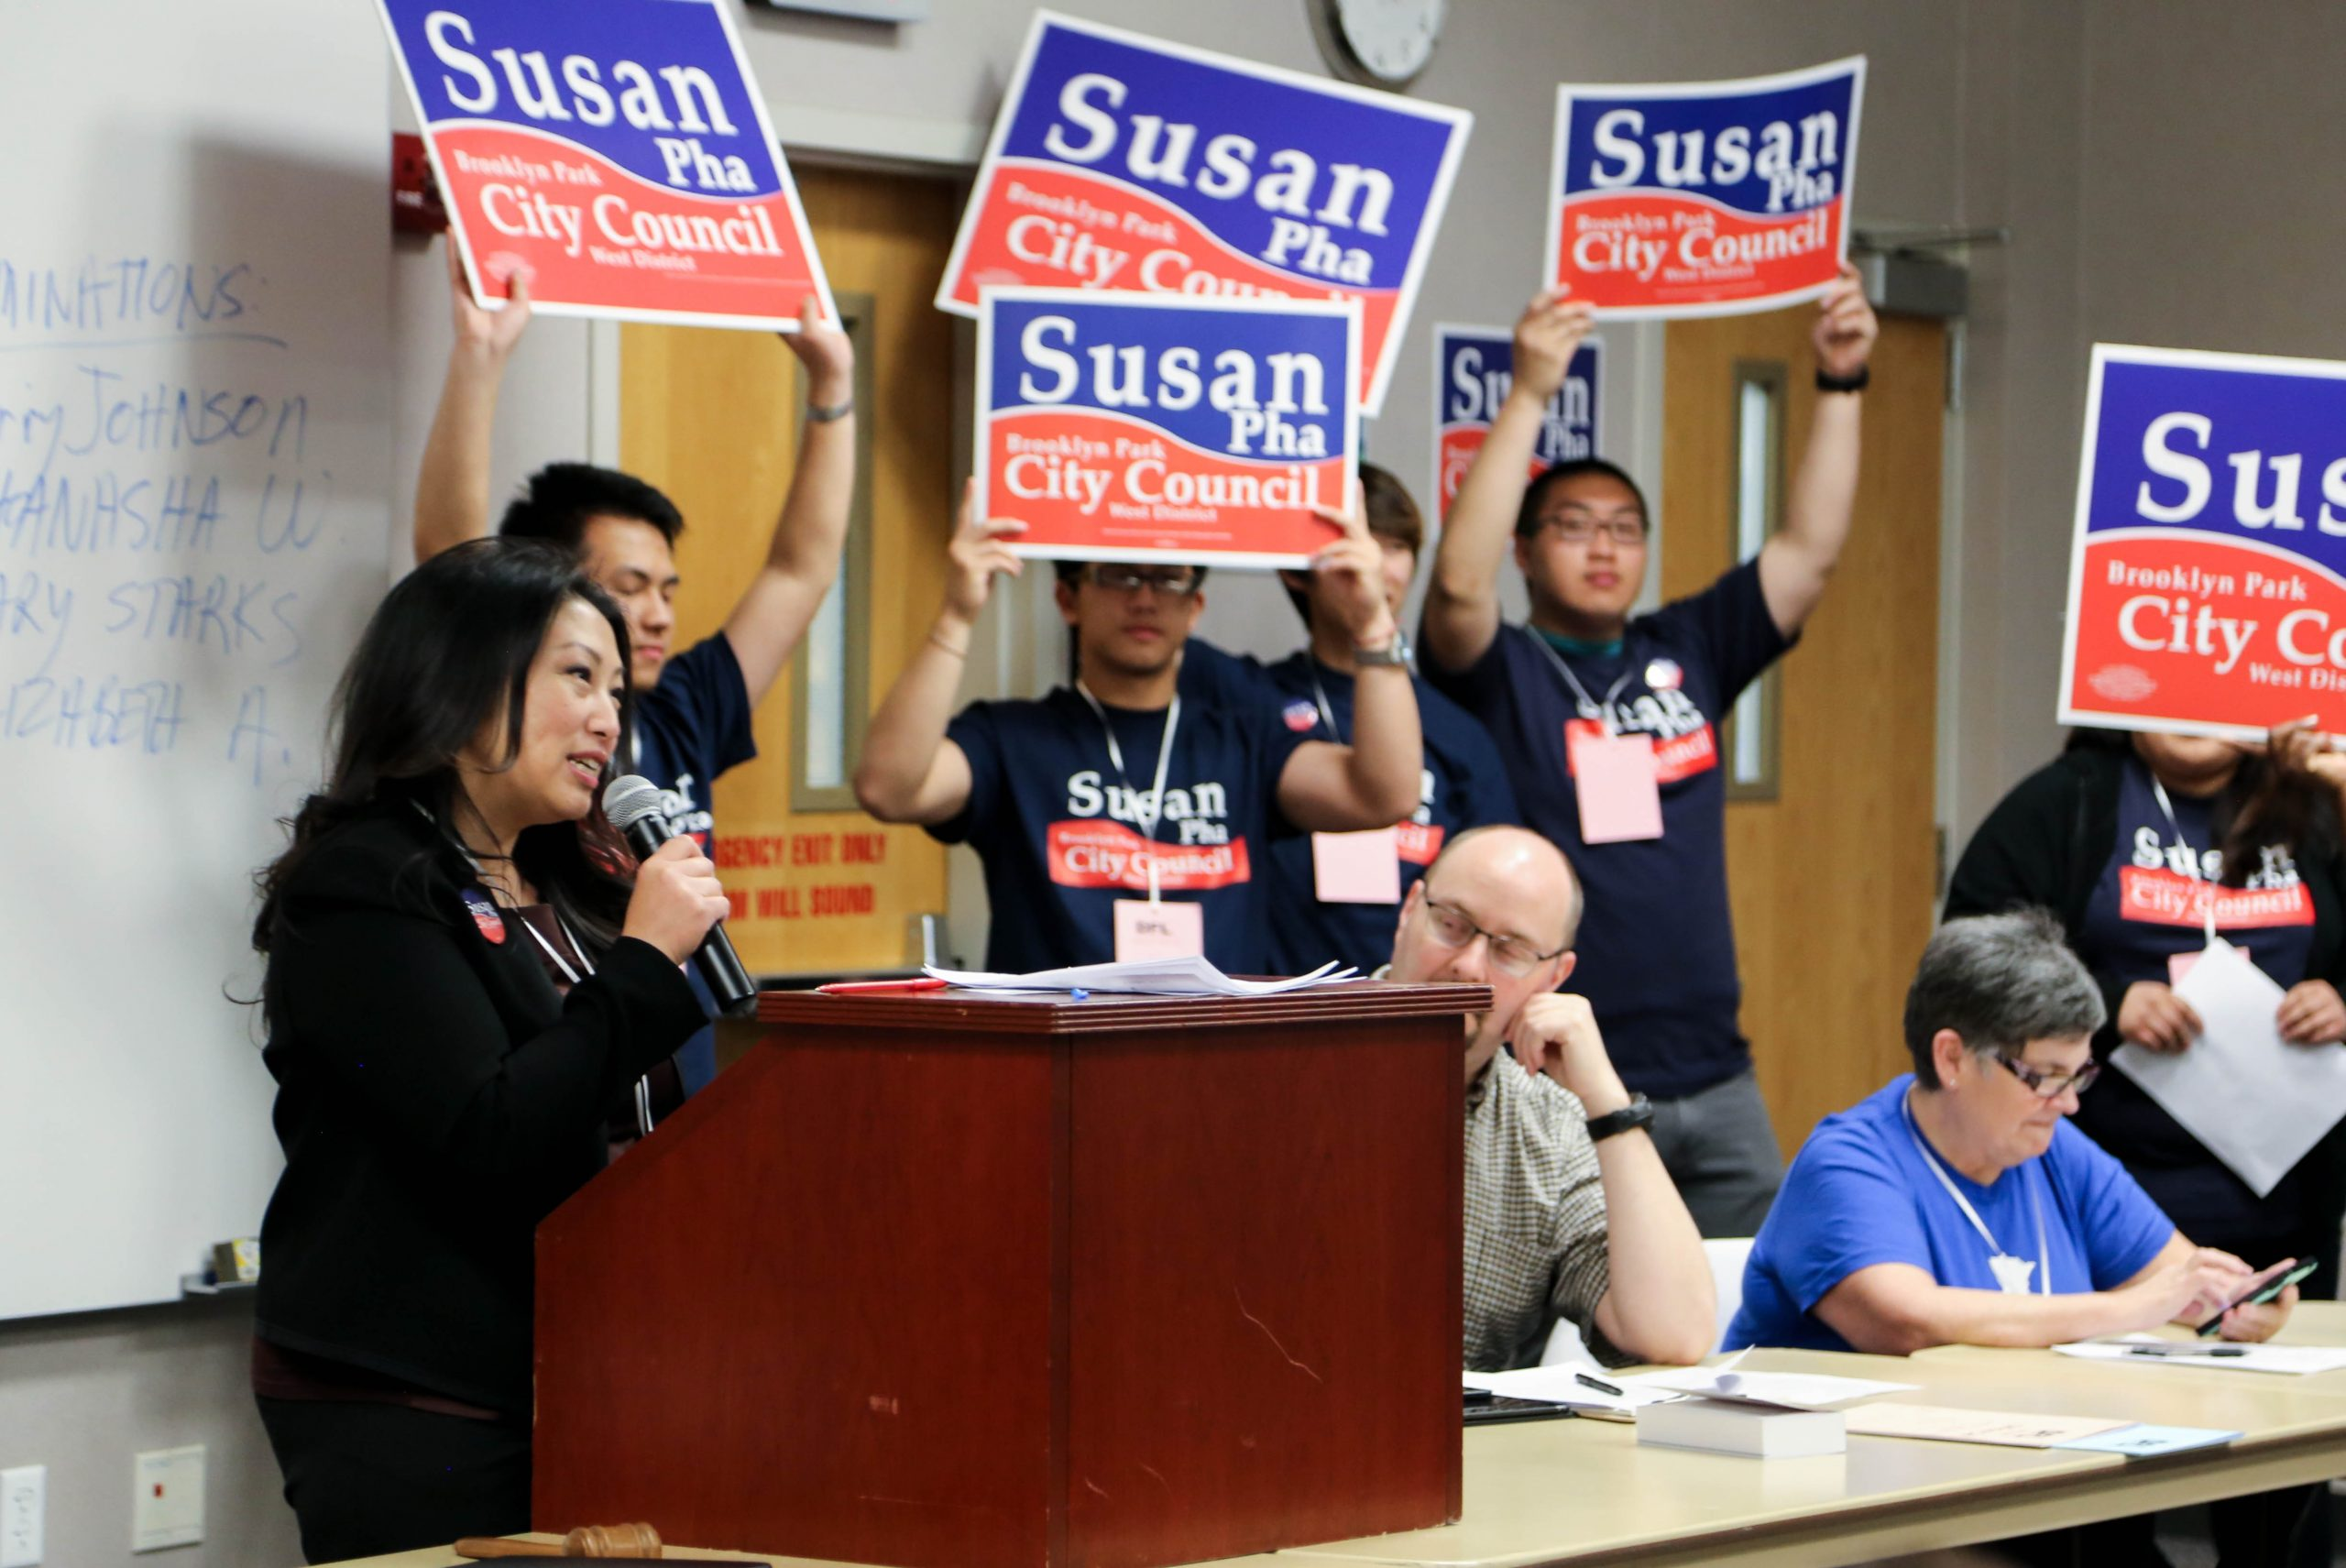 Susan Pha for City Council